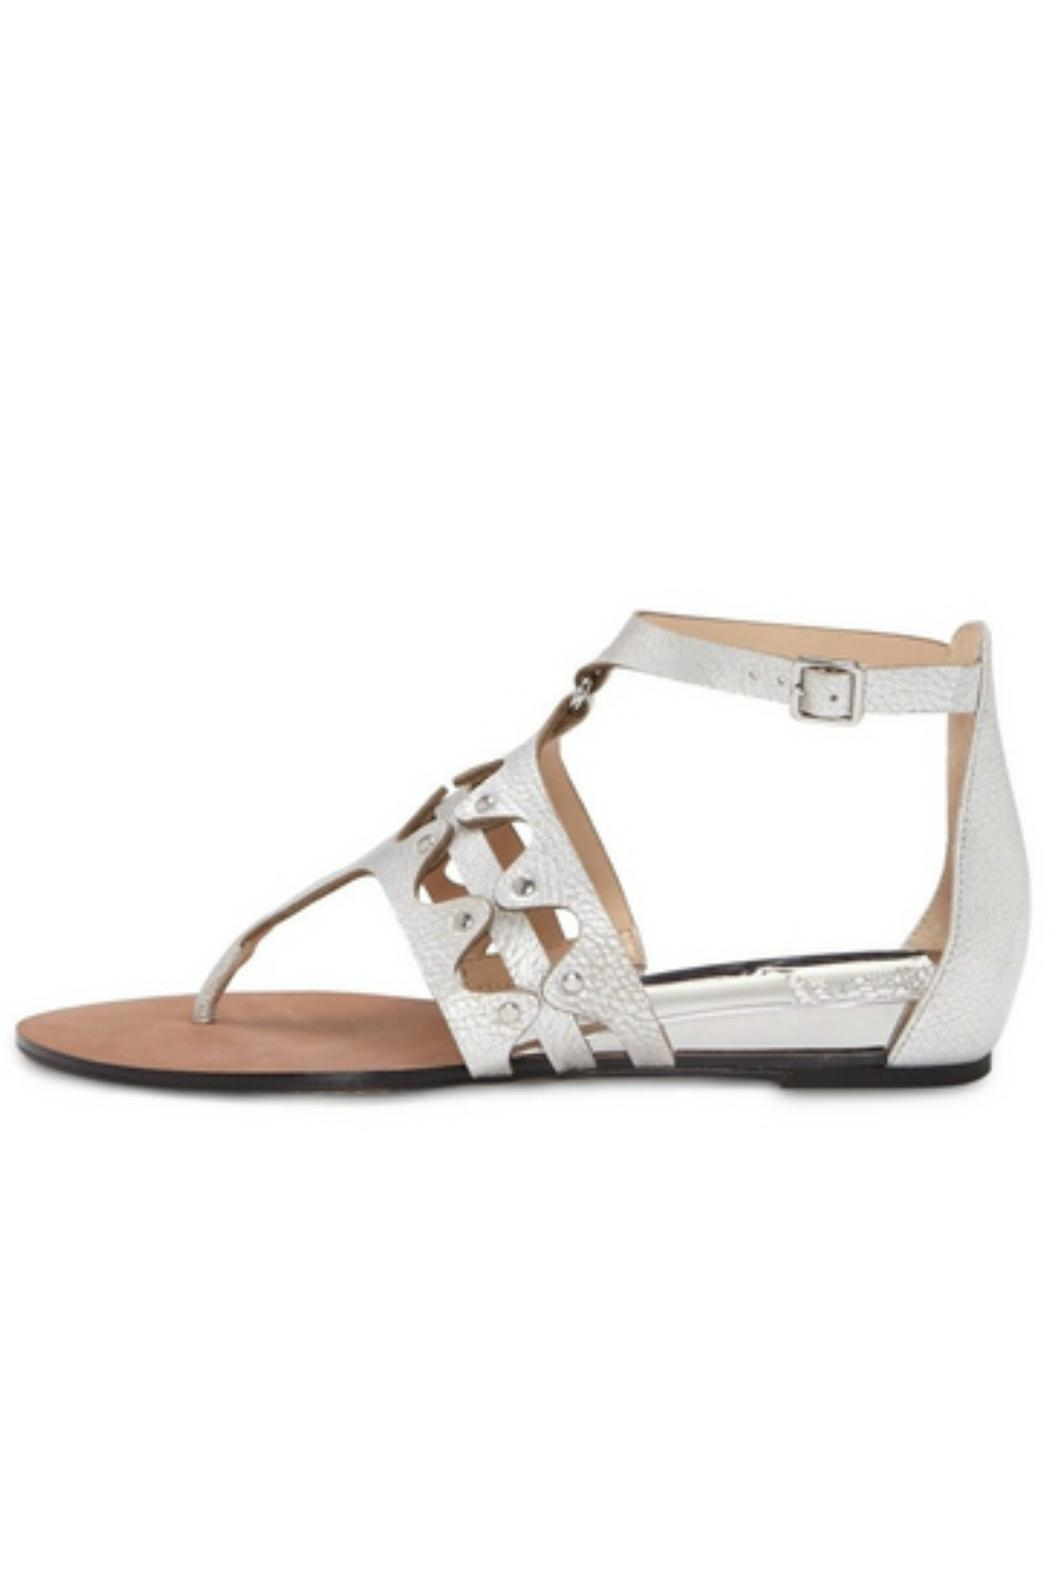 8244d5557ec1be Vince Camuto Arlanian Thong Sandal from New Jersey by Suburban Shoes ...